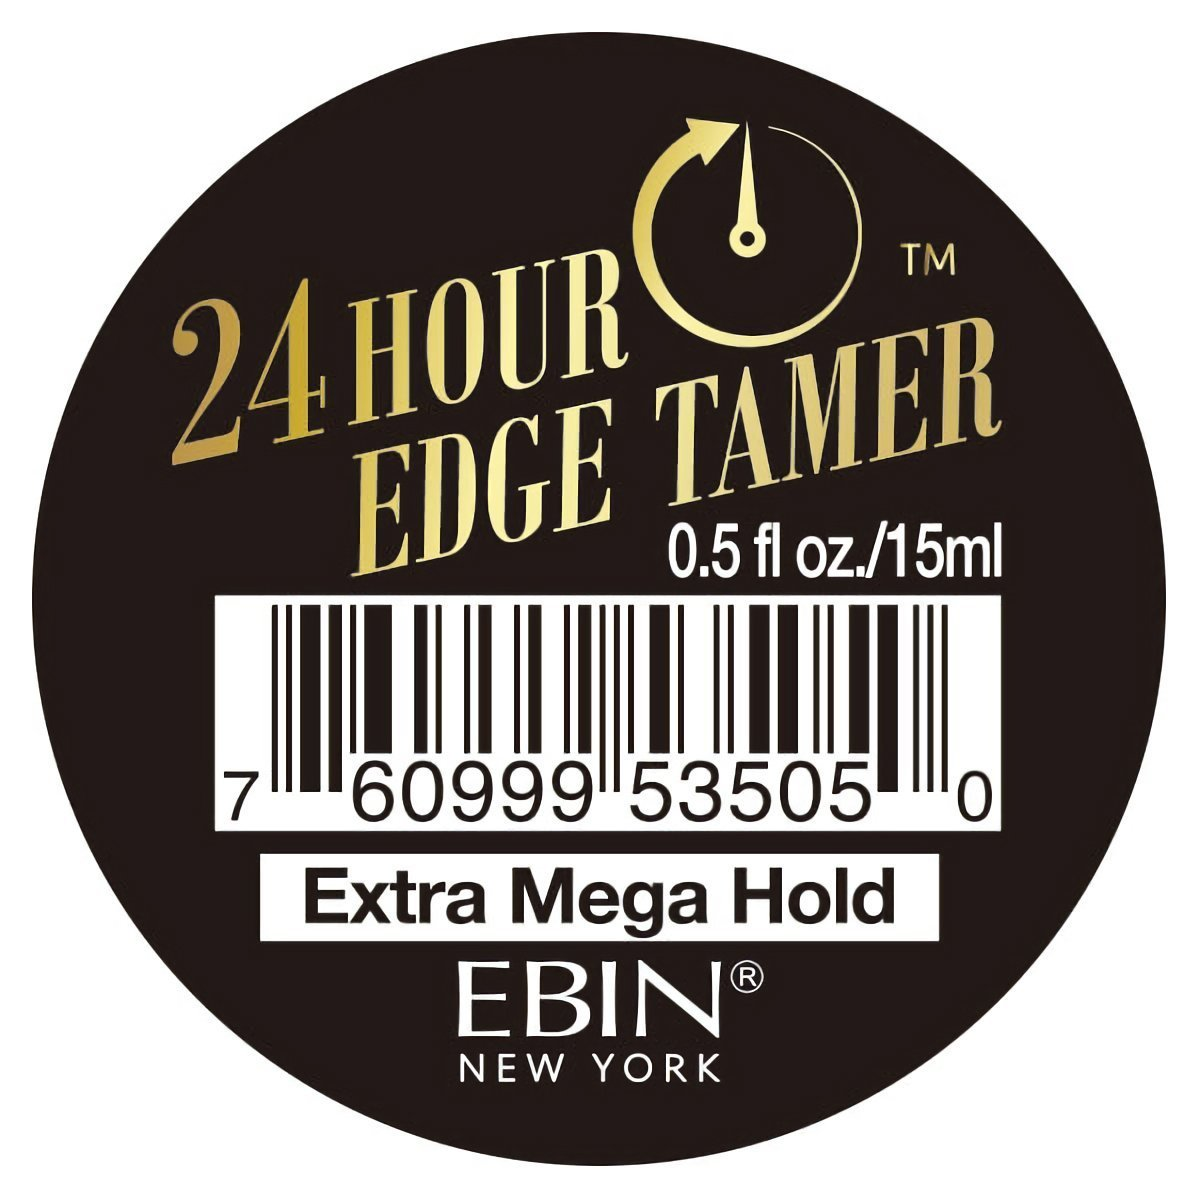 [EBIN NEW YORK] 24 HOUR EDGE TAMER EXTRA MEGA HOLD CONTROL 0.5OZ/15mL